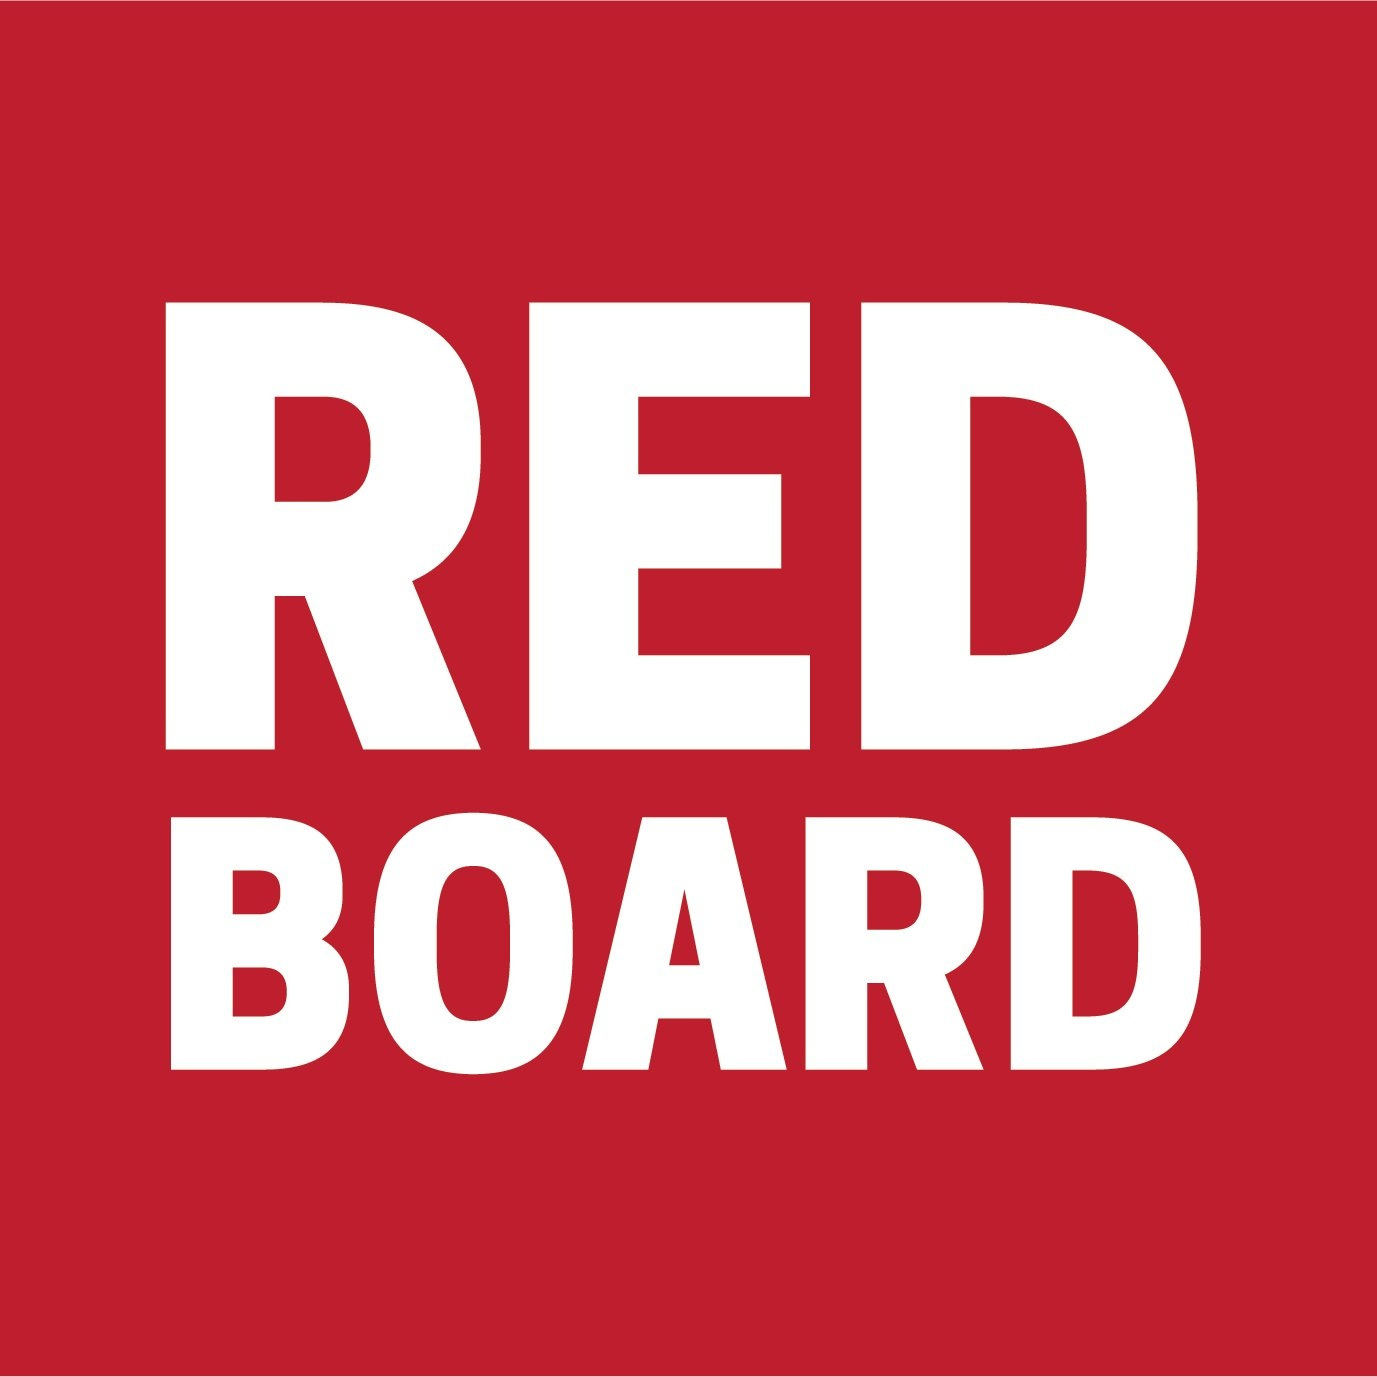 redboard credit union 2.0 financial technology